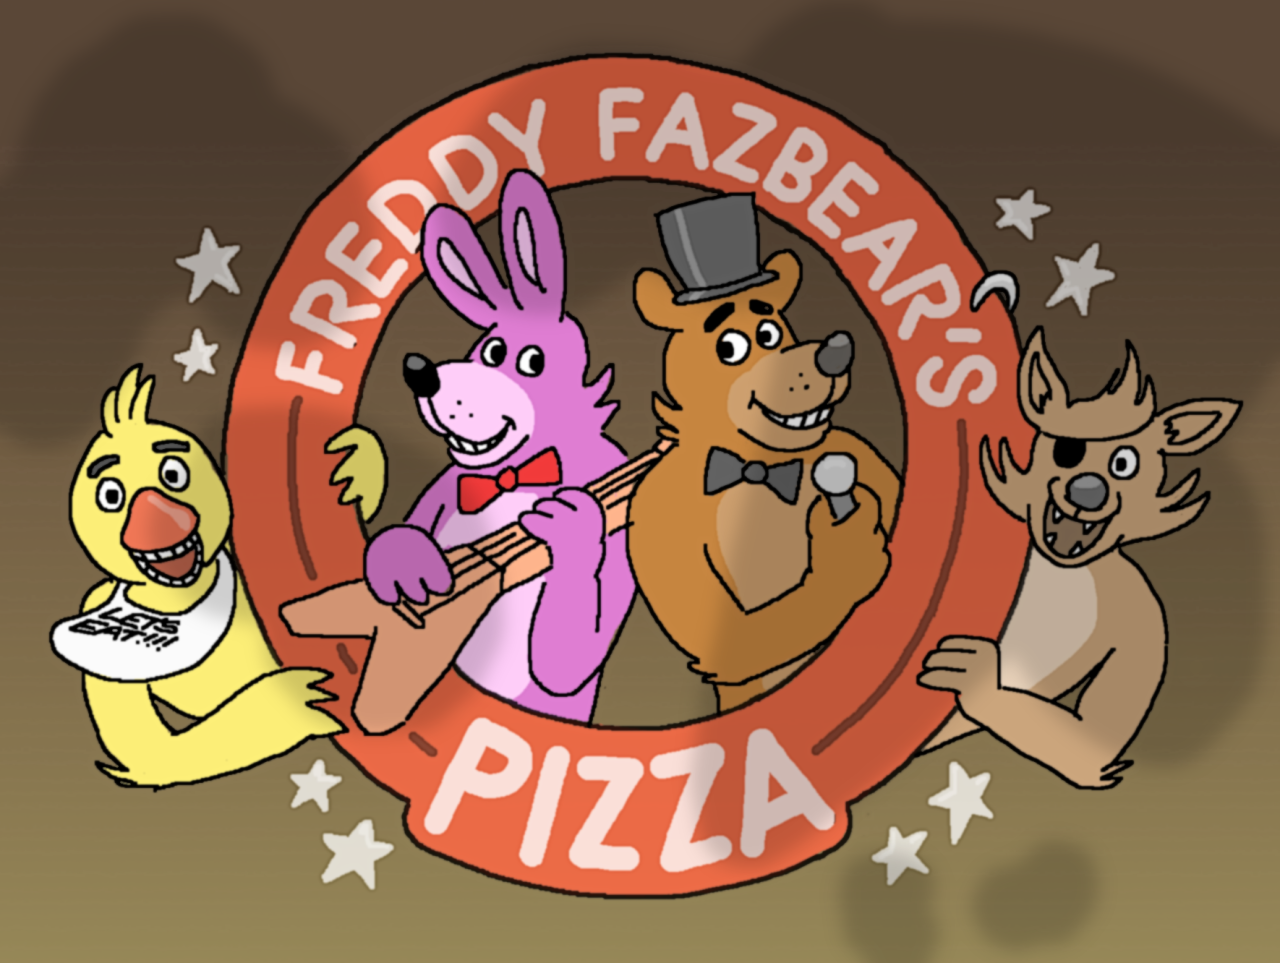 Phone number for freddy fazbears pizzaria - Feel Free To Drop Off Some Ratings Suggestions And Questions Tell Us About Your Fun Time At Freddy S Aswell